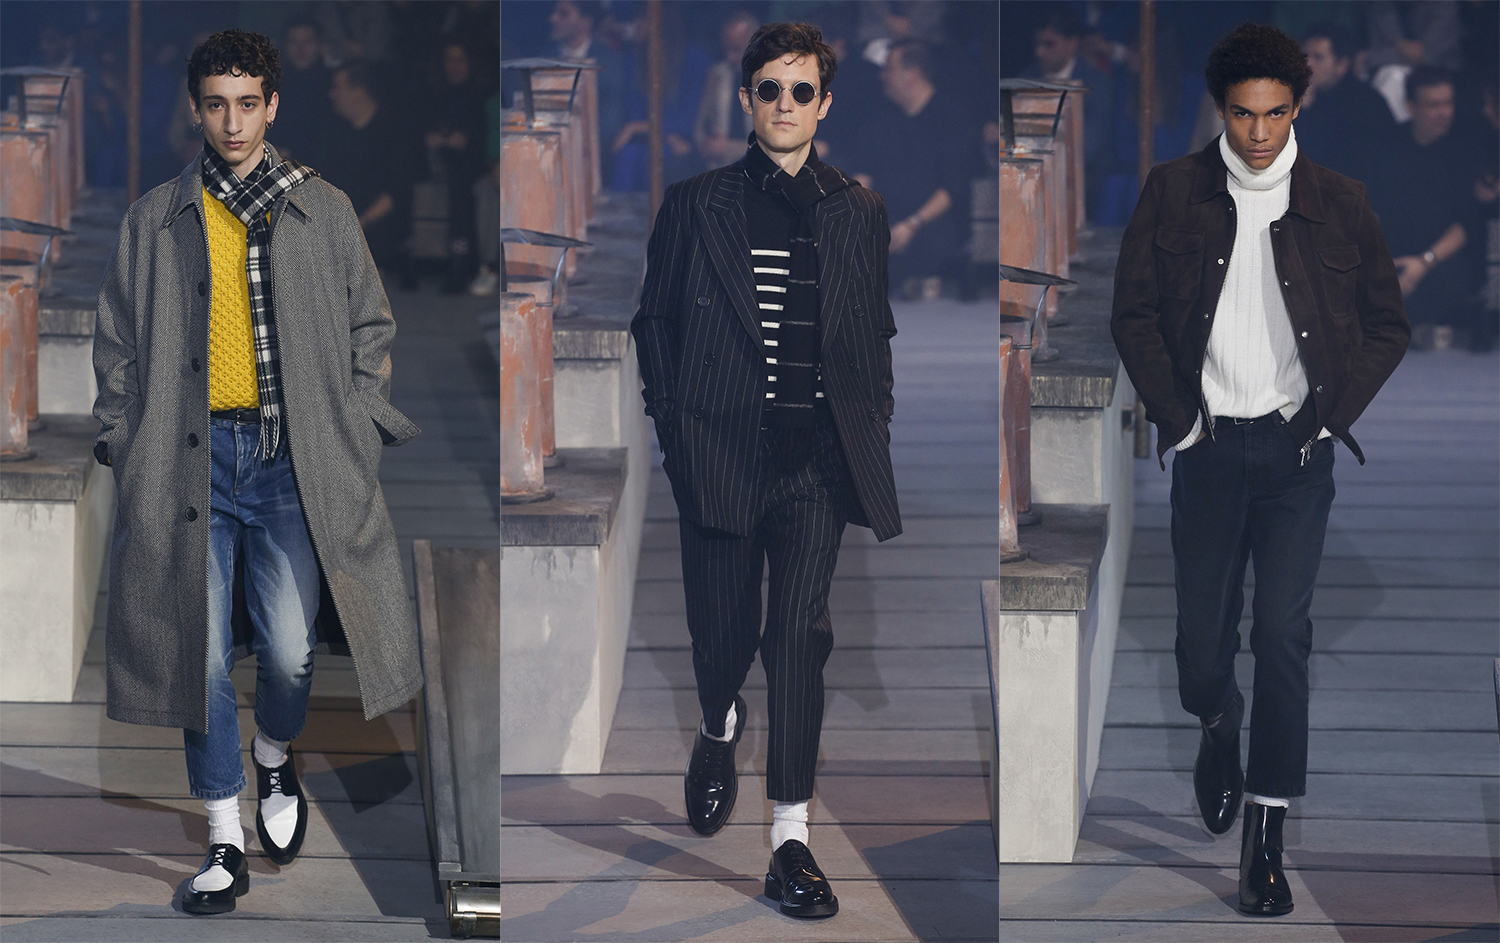 Ami Autumn Winter 2018, Paris Fashion Week Men's AW18